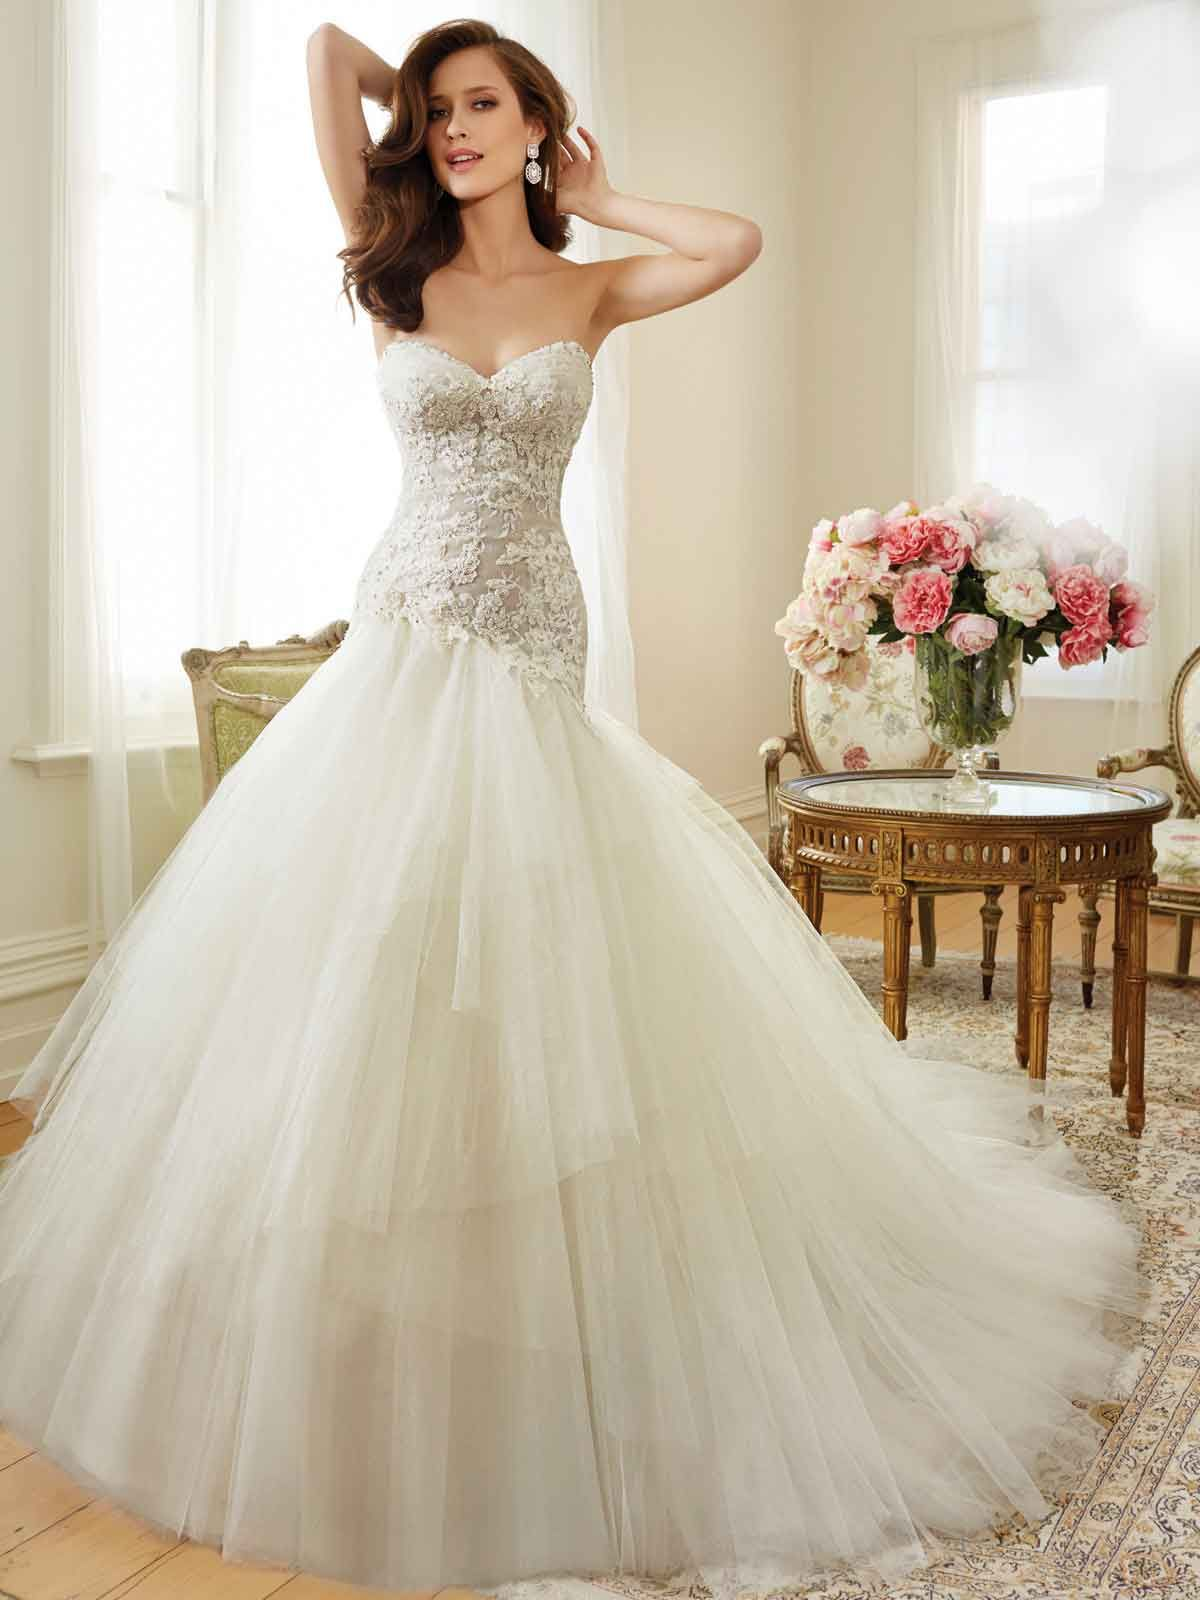 STUNNING AND SOPHISTICATED WEDDING GOWNS | Sophisticated wedding ...